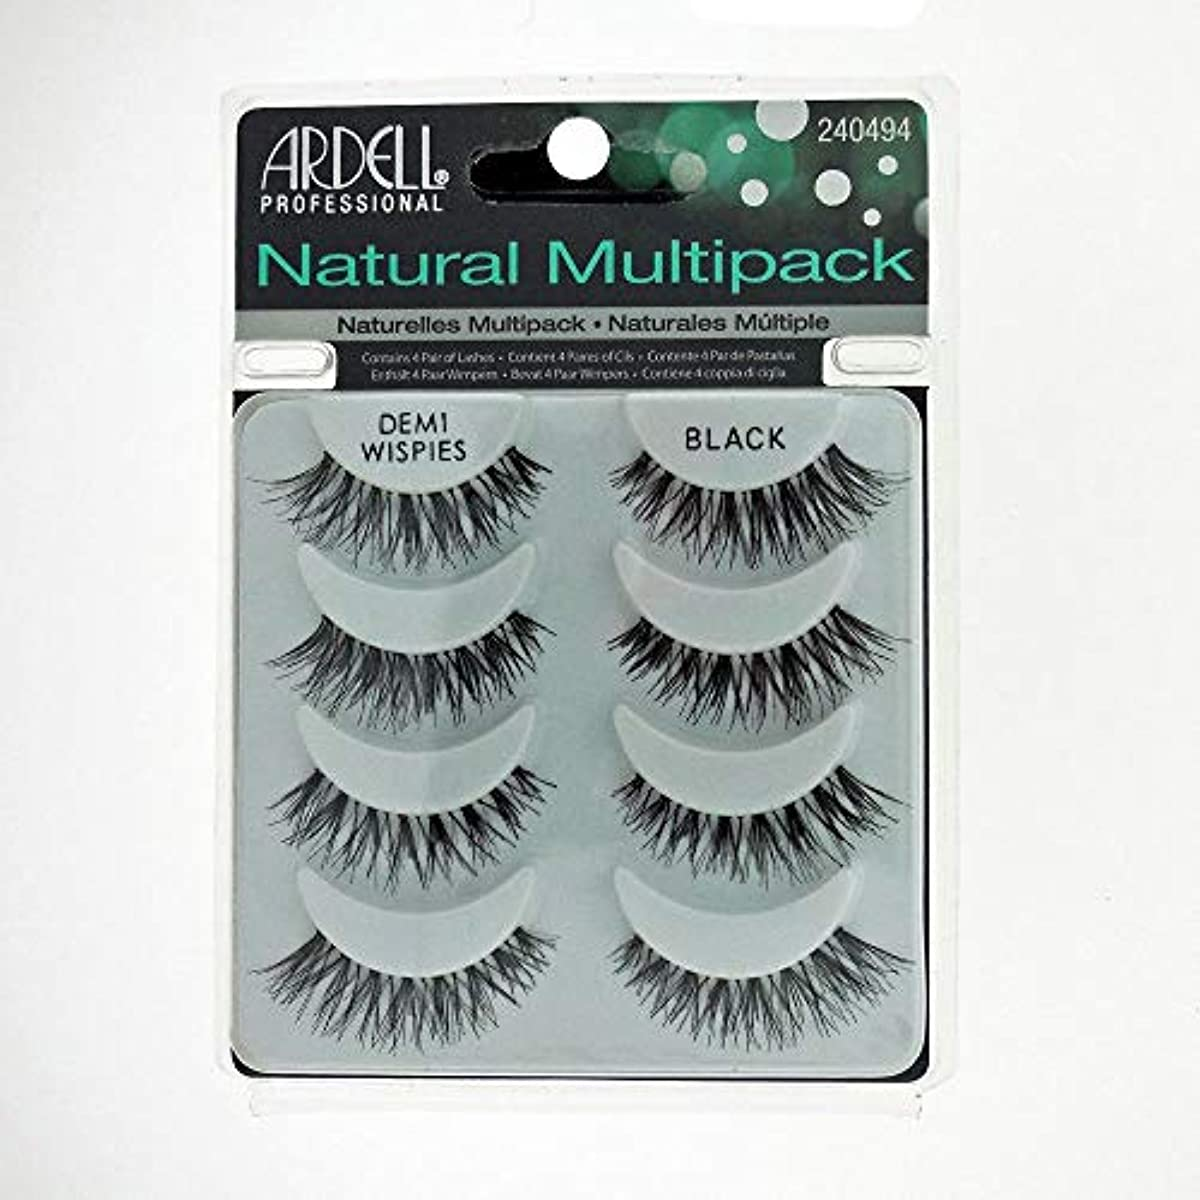 Ardell Multipacks Lashes - Multipack Demi Wispies